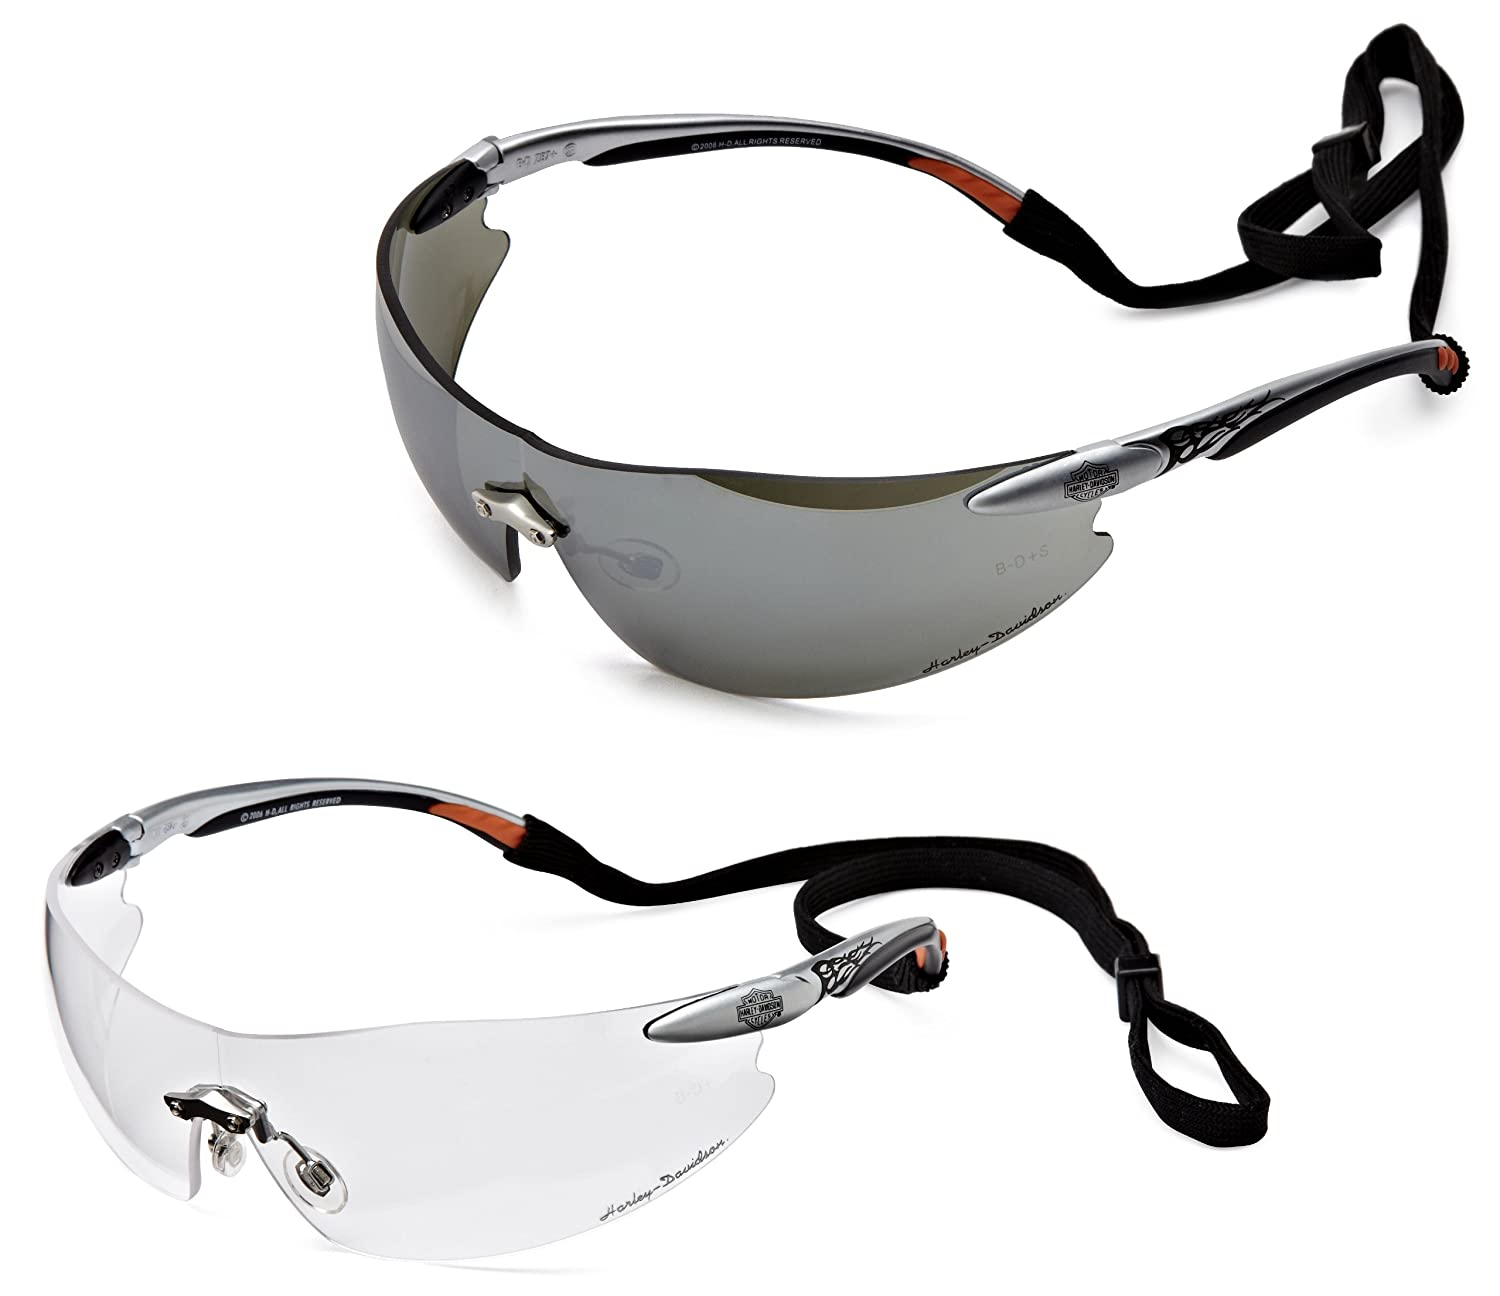 rhd800k series safety eyewear with hang cords 2pack safety glasses amazoncom